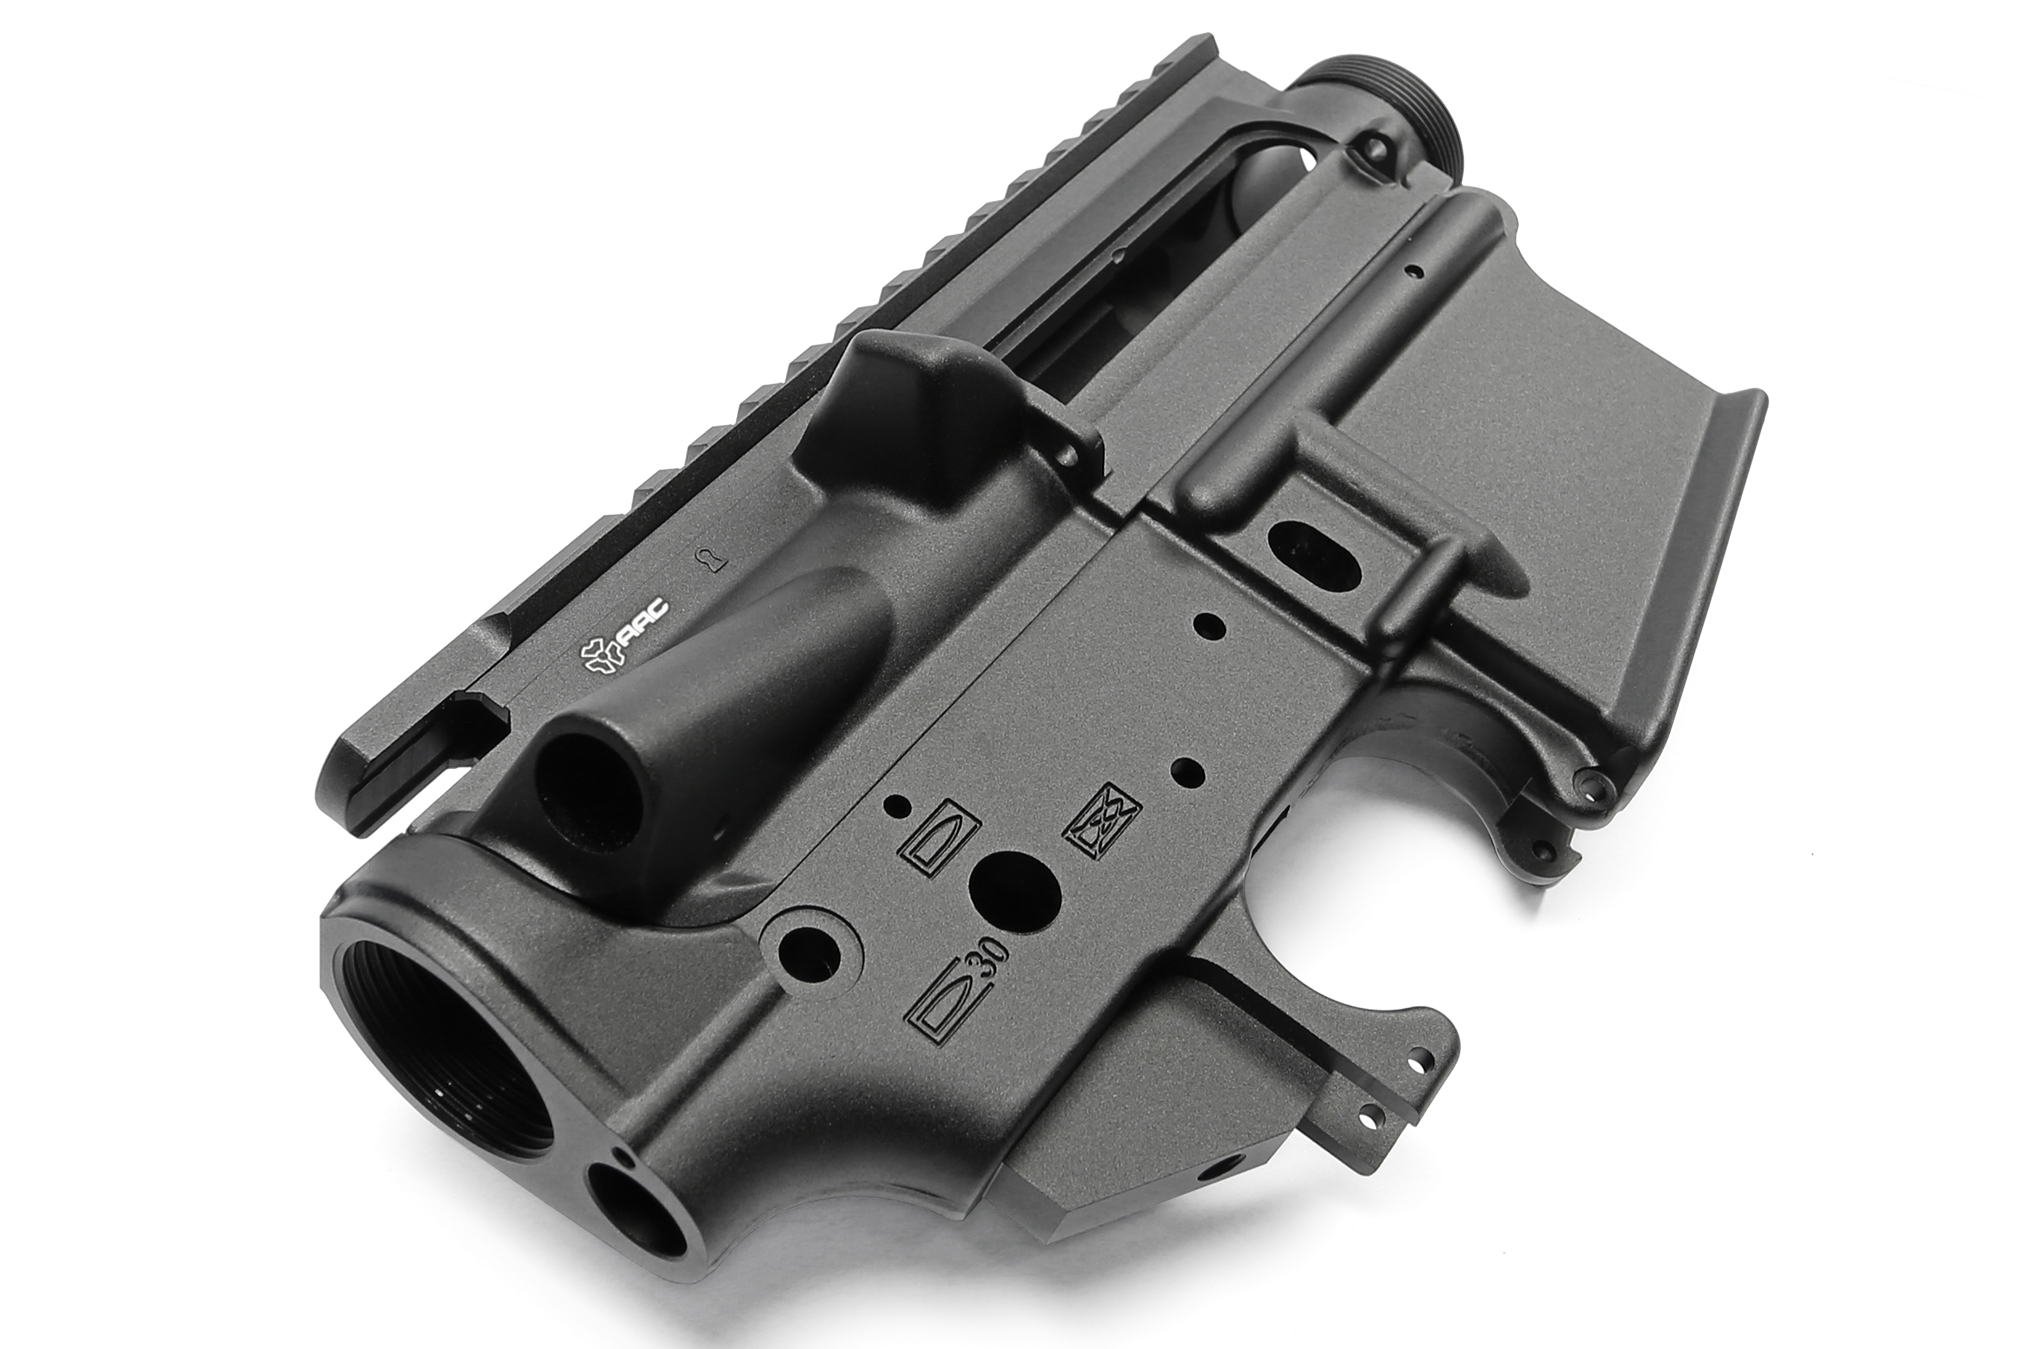 RA-TECH M4 Forged Receiver for GHK M4 7075 (AAC marking)